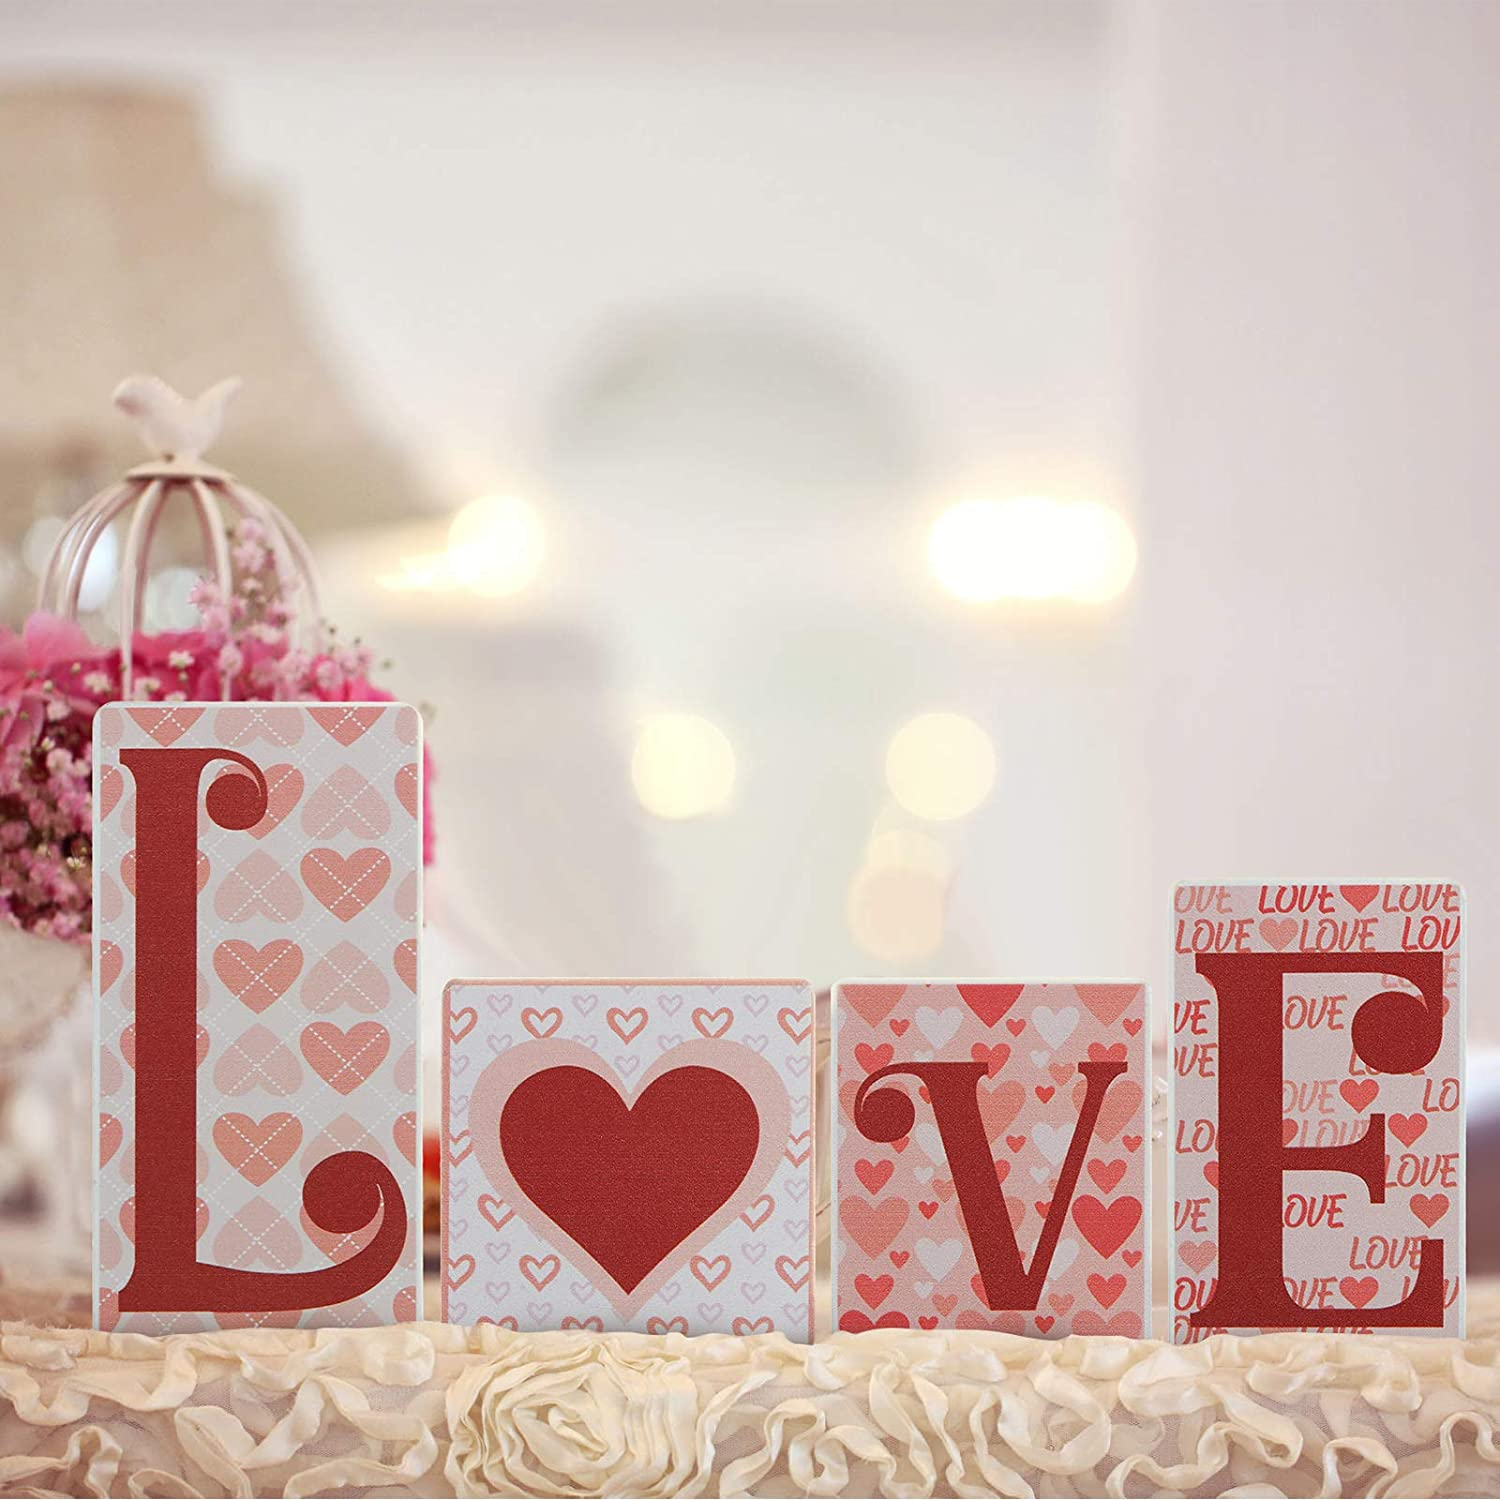 Valentine's Day Love Wooden Blocks Heart Love Wooden Signs Freestanding Love Tabletop Decorations Love Letters Table Signs for Home Party Wedding Table Decor